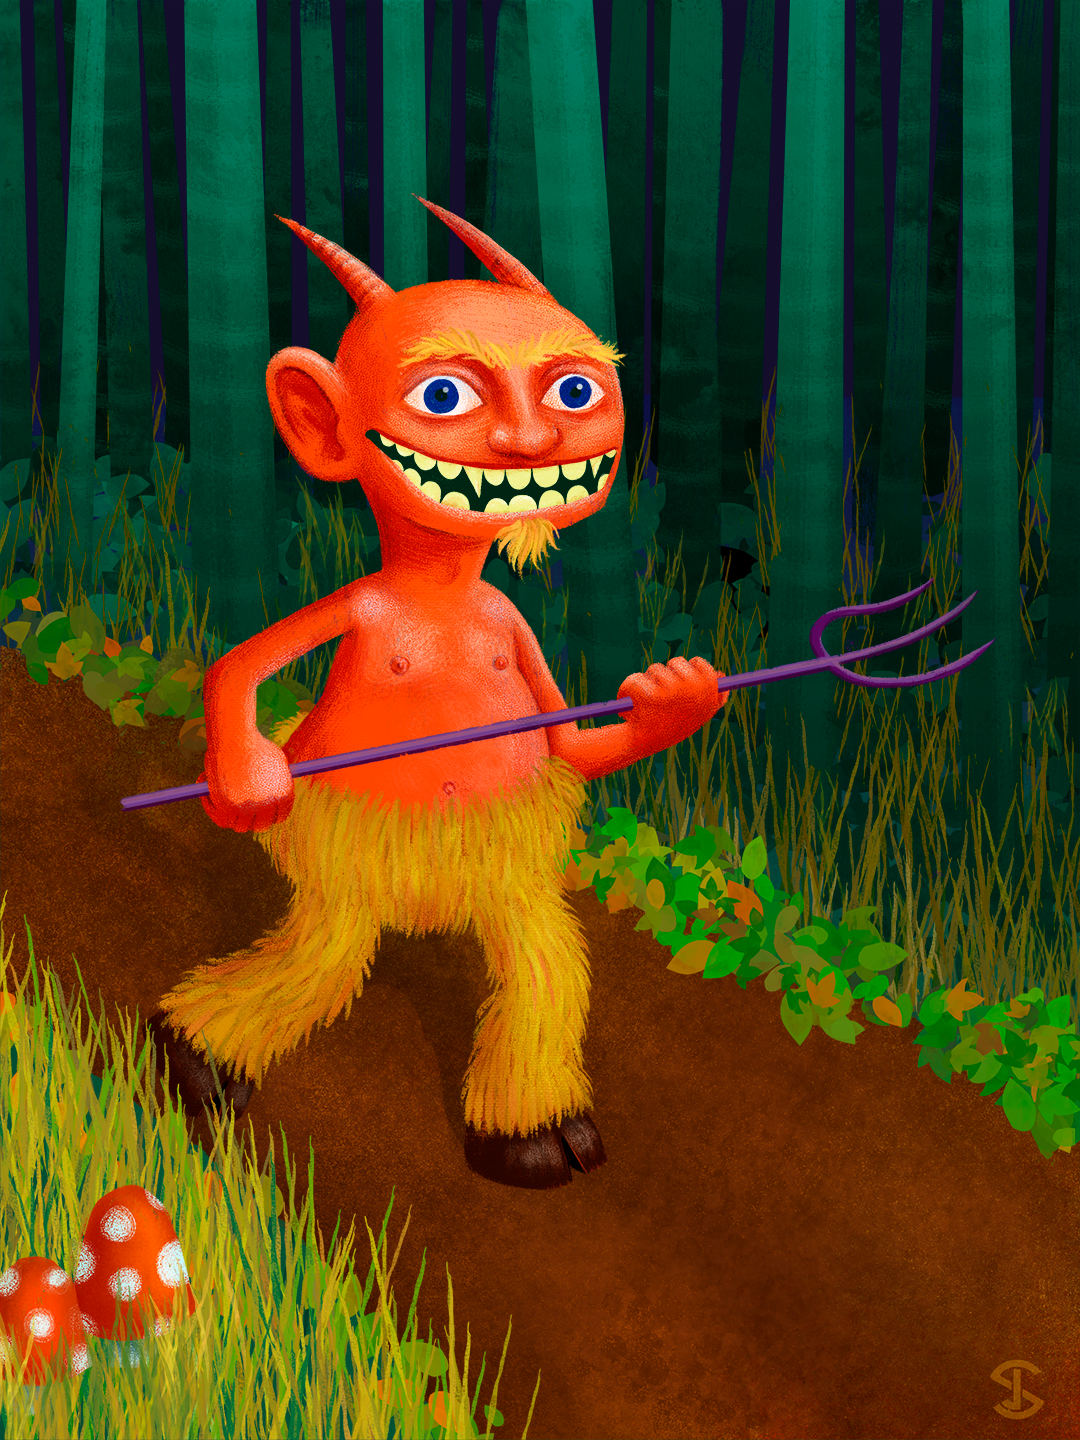 Illustration of a hunting, red devil